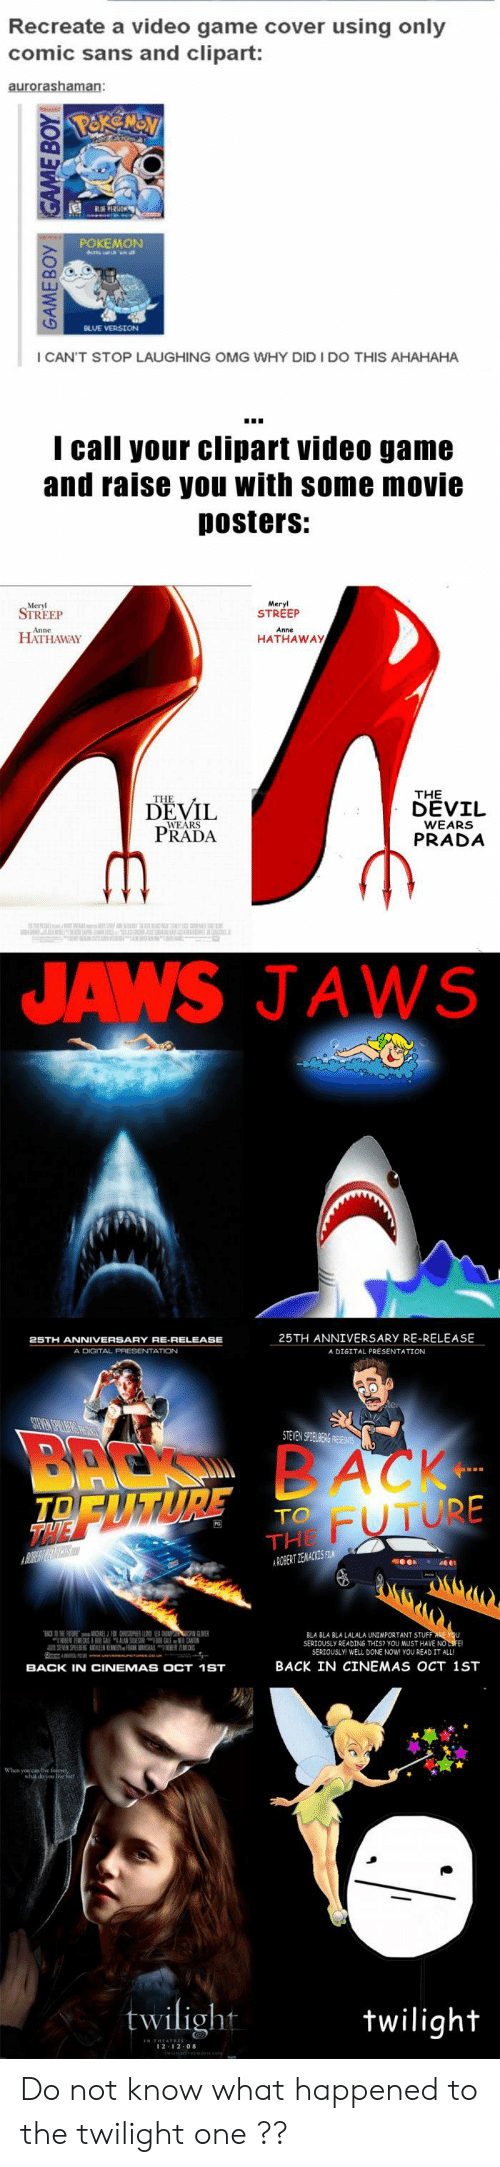 Thes: Recreate a video game cover using only  comic sans and clipart:  POKEMON  I CAN'T STOP LAUGHING OMG WHY DID I DO THIS AHAHAHA  I call your clipart video game  and raise you with some movie  Dosters:  Meryl  STREEP  STREEP  HATHAWAY  HATHAWAy  THE  DEVIL  DEVİL  PRADA  WEARS  PRADA  JAWS JAWS  25TH ANNIVERSARY RE-RELEASE  A DIGITAL PRESENTATION  A DIGITAL PRESENTATION  STEVENS TEABi  FUTURE  TO  THE  益NER  BLA BLA BLA LALALA UNİMPORTANT STUF  SERJOUSLY READING THES? YOU MUST HAVE NO  SERIOUSLY WELL DONE NOW YOU READ IT ALL  BACK IN CINEMAS OCT 1ST  BACK IN CINEMAS OCT 1ST  twilight  wiligh  2 12 0 Do not know what happened to the twilight one ??